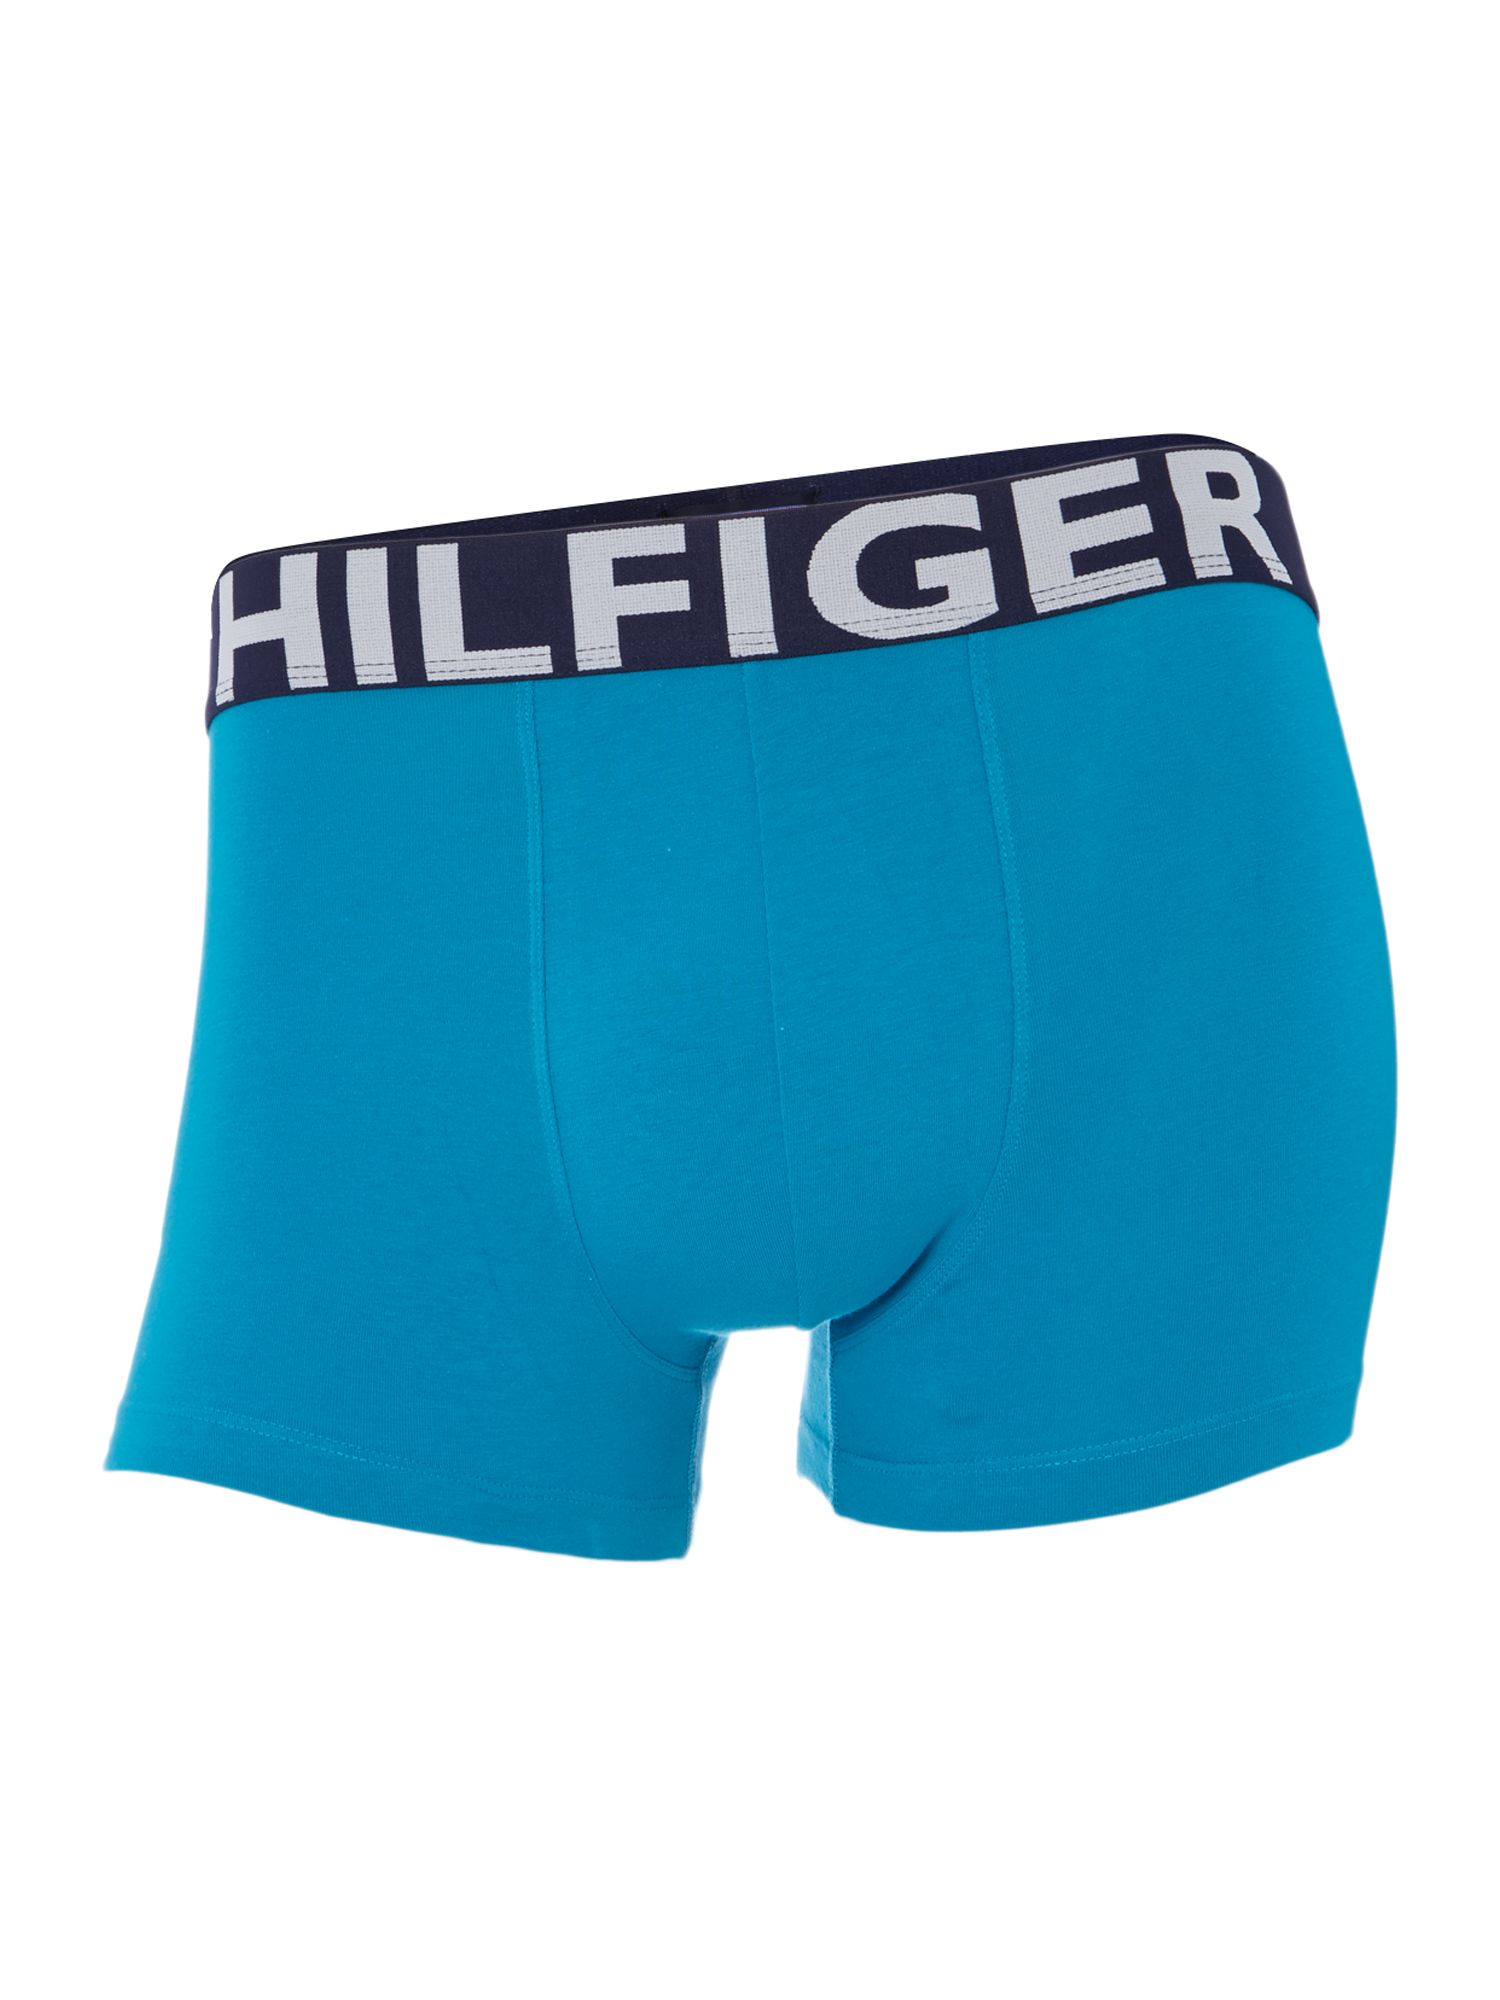 2 pack print and plain underwear trunk